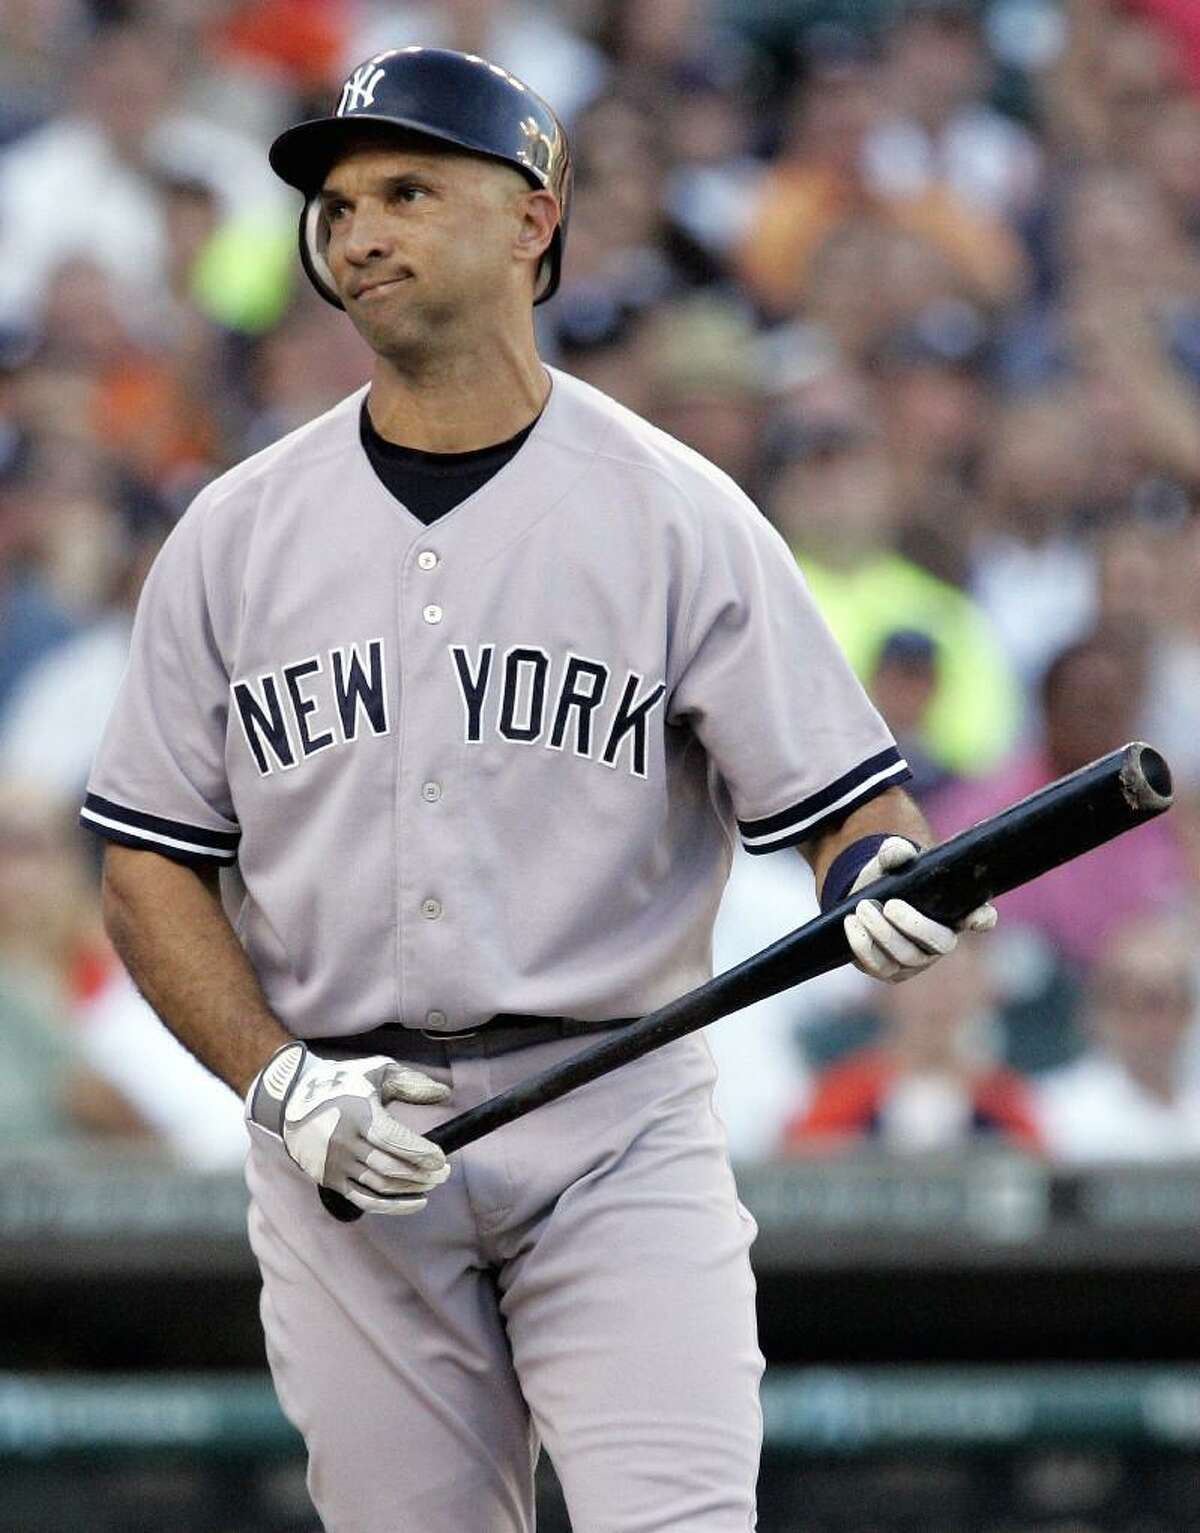 ASSOCIATED PRESS New York Yankee batter Raul Ibanez reacts after being called out on strikes in the second inning of Monday's game against the Detroit Tigers in Detroit. The Yankees lost 7-2.